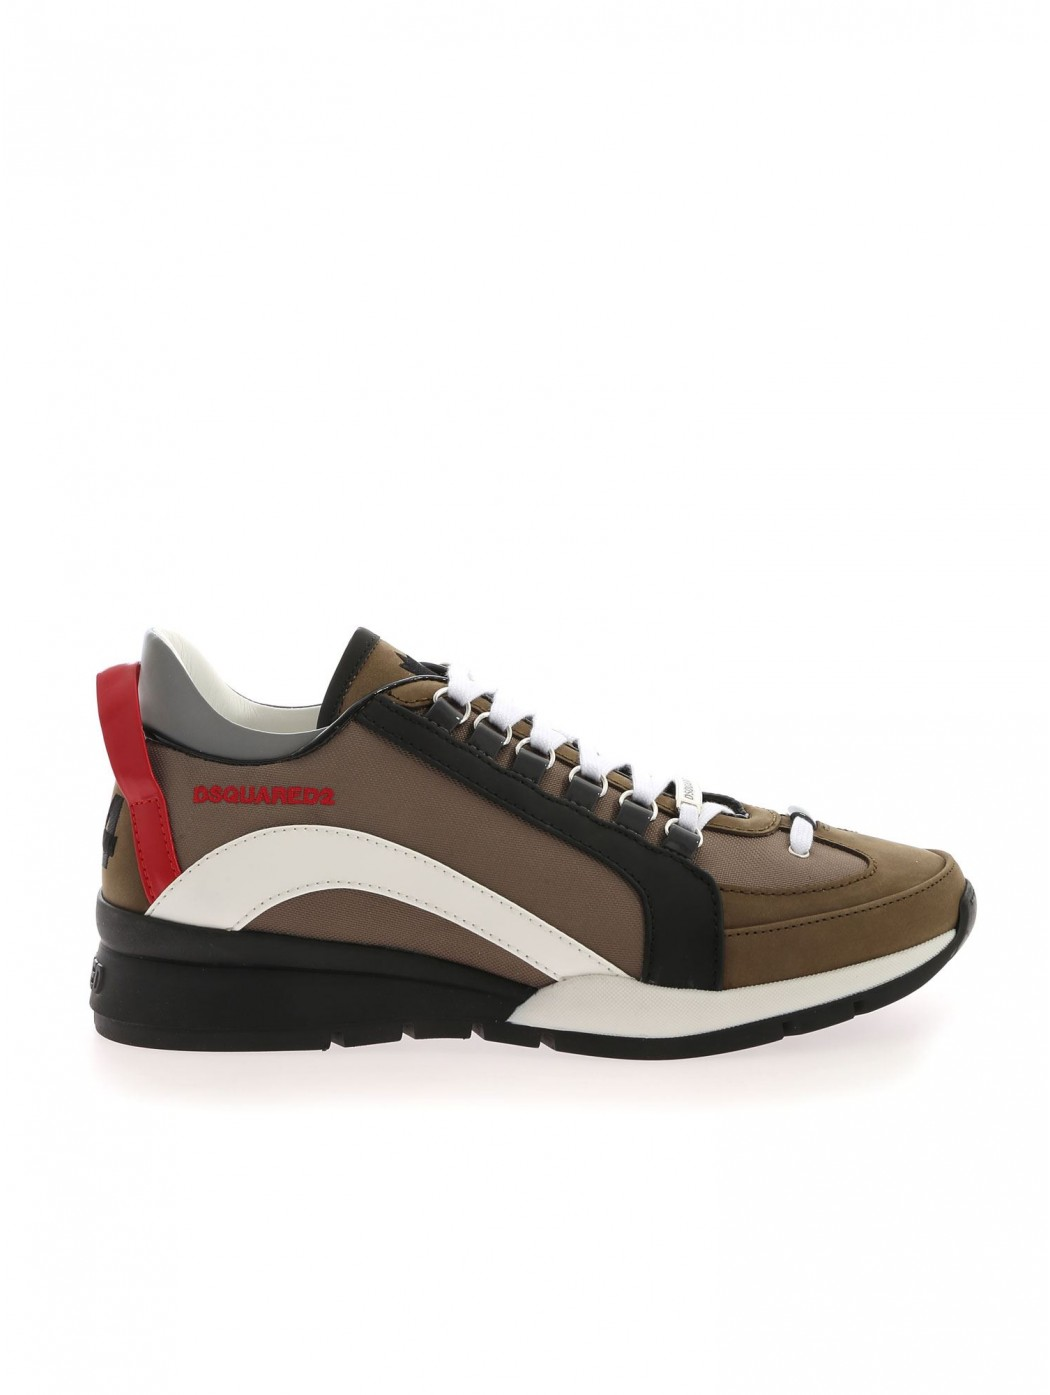 SNEAKER DSQUARED2 SNM050511702720 M1628